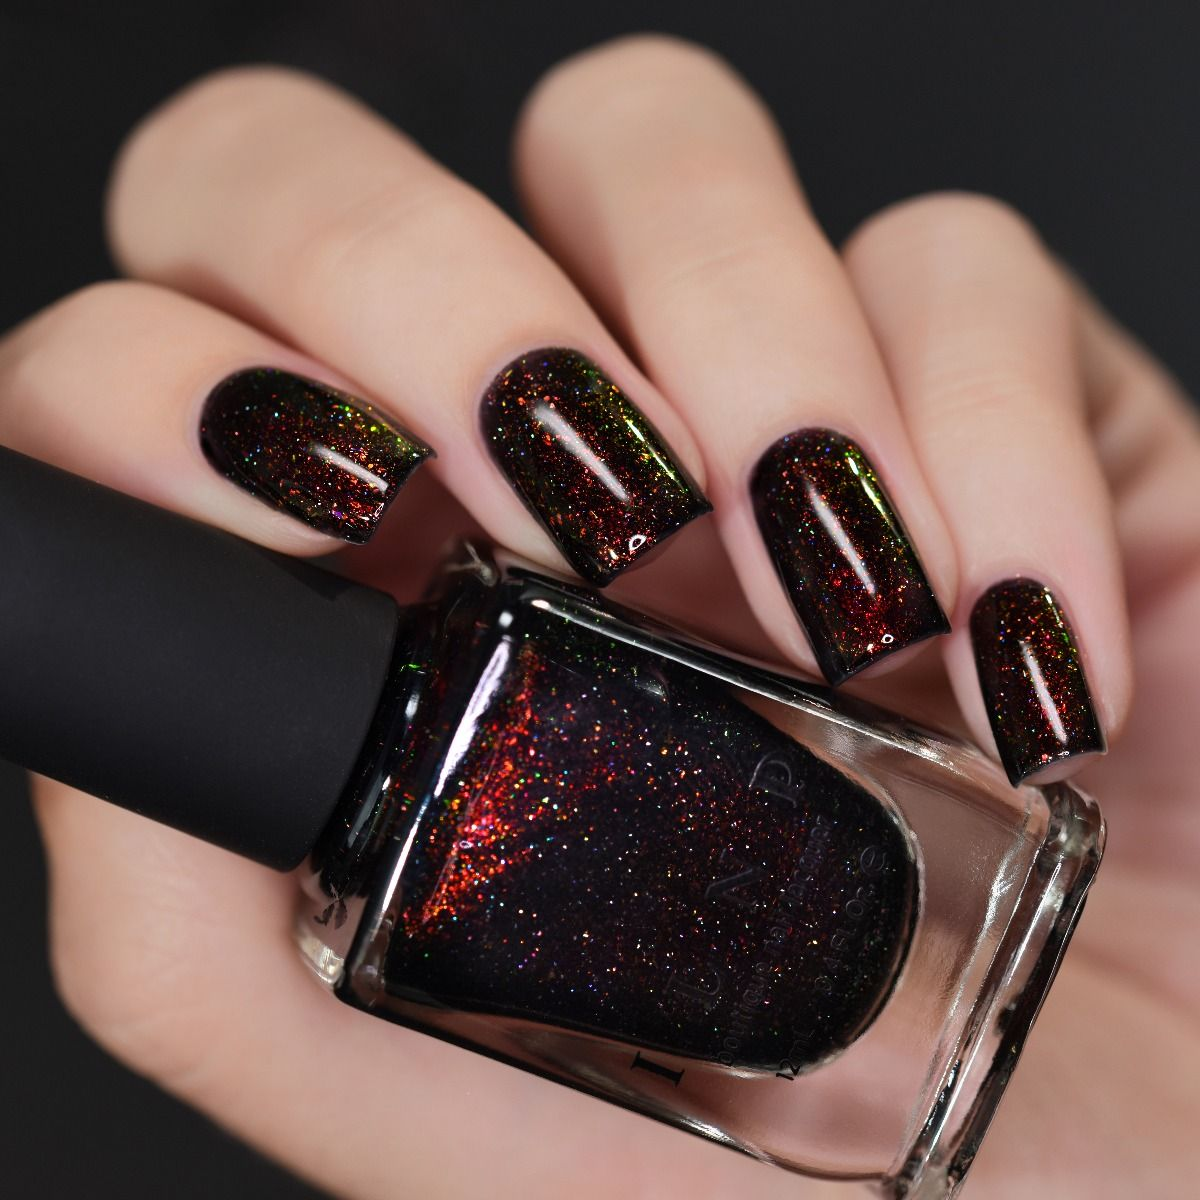 Underground – Deep Black Jelly Holographic Shimmer Nail Polish by ILNP